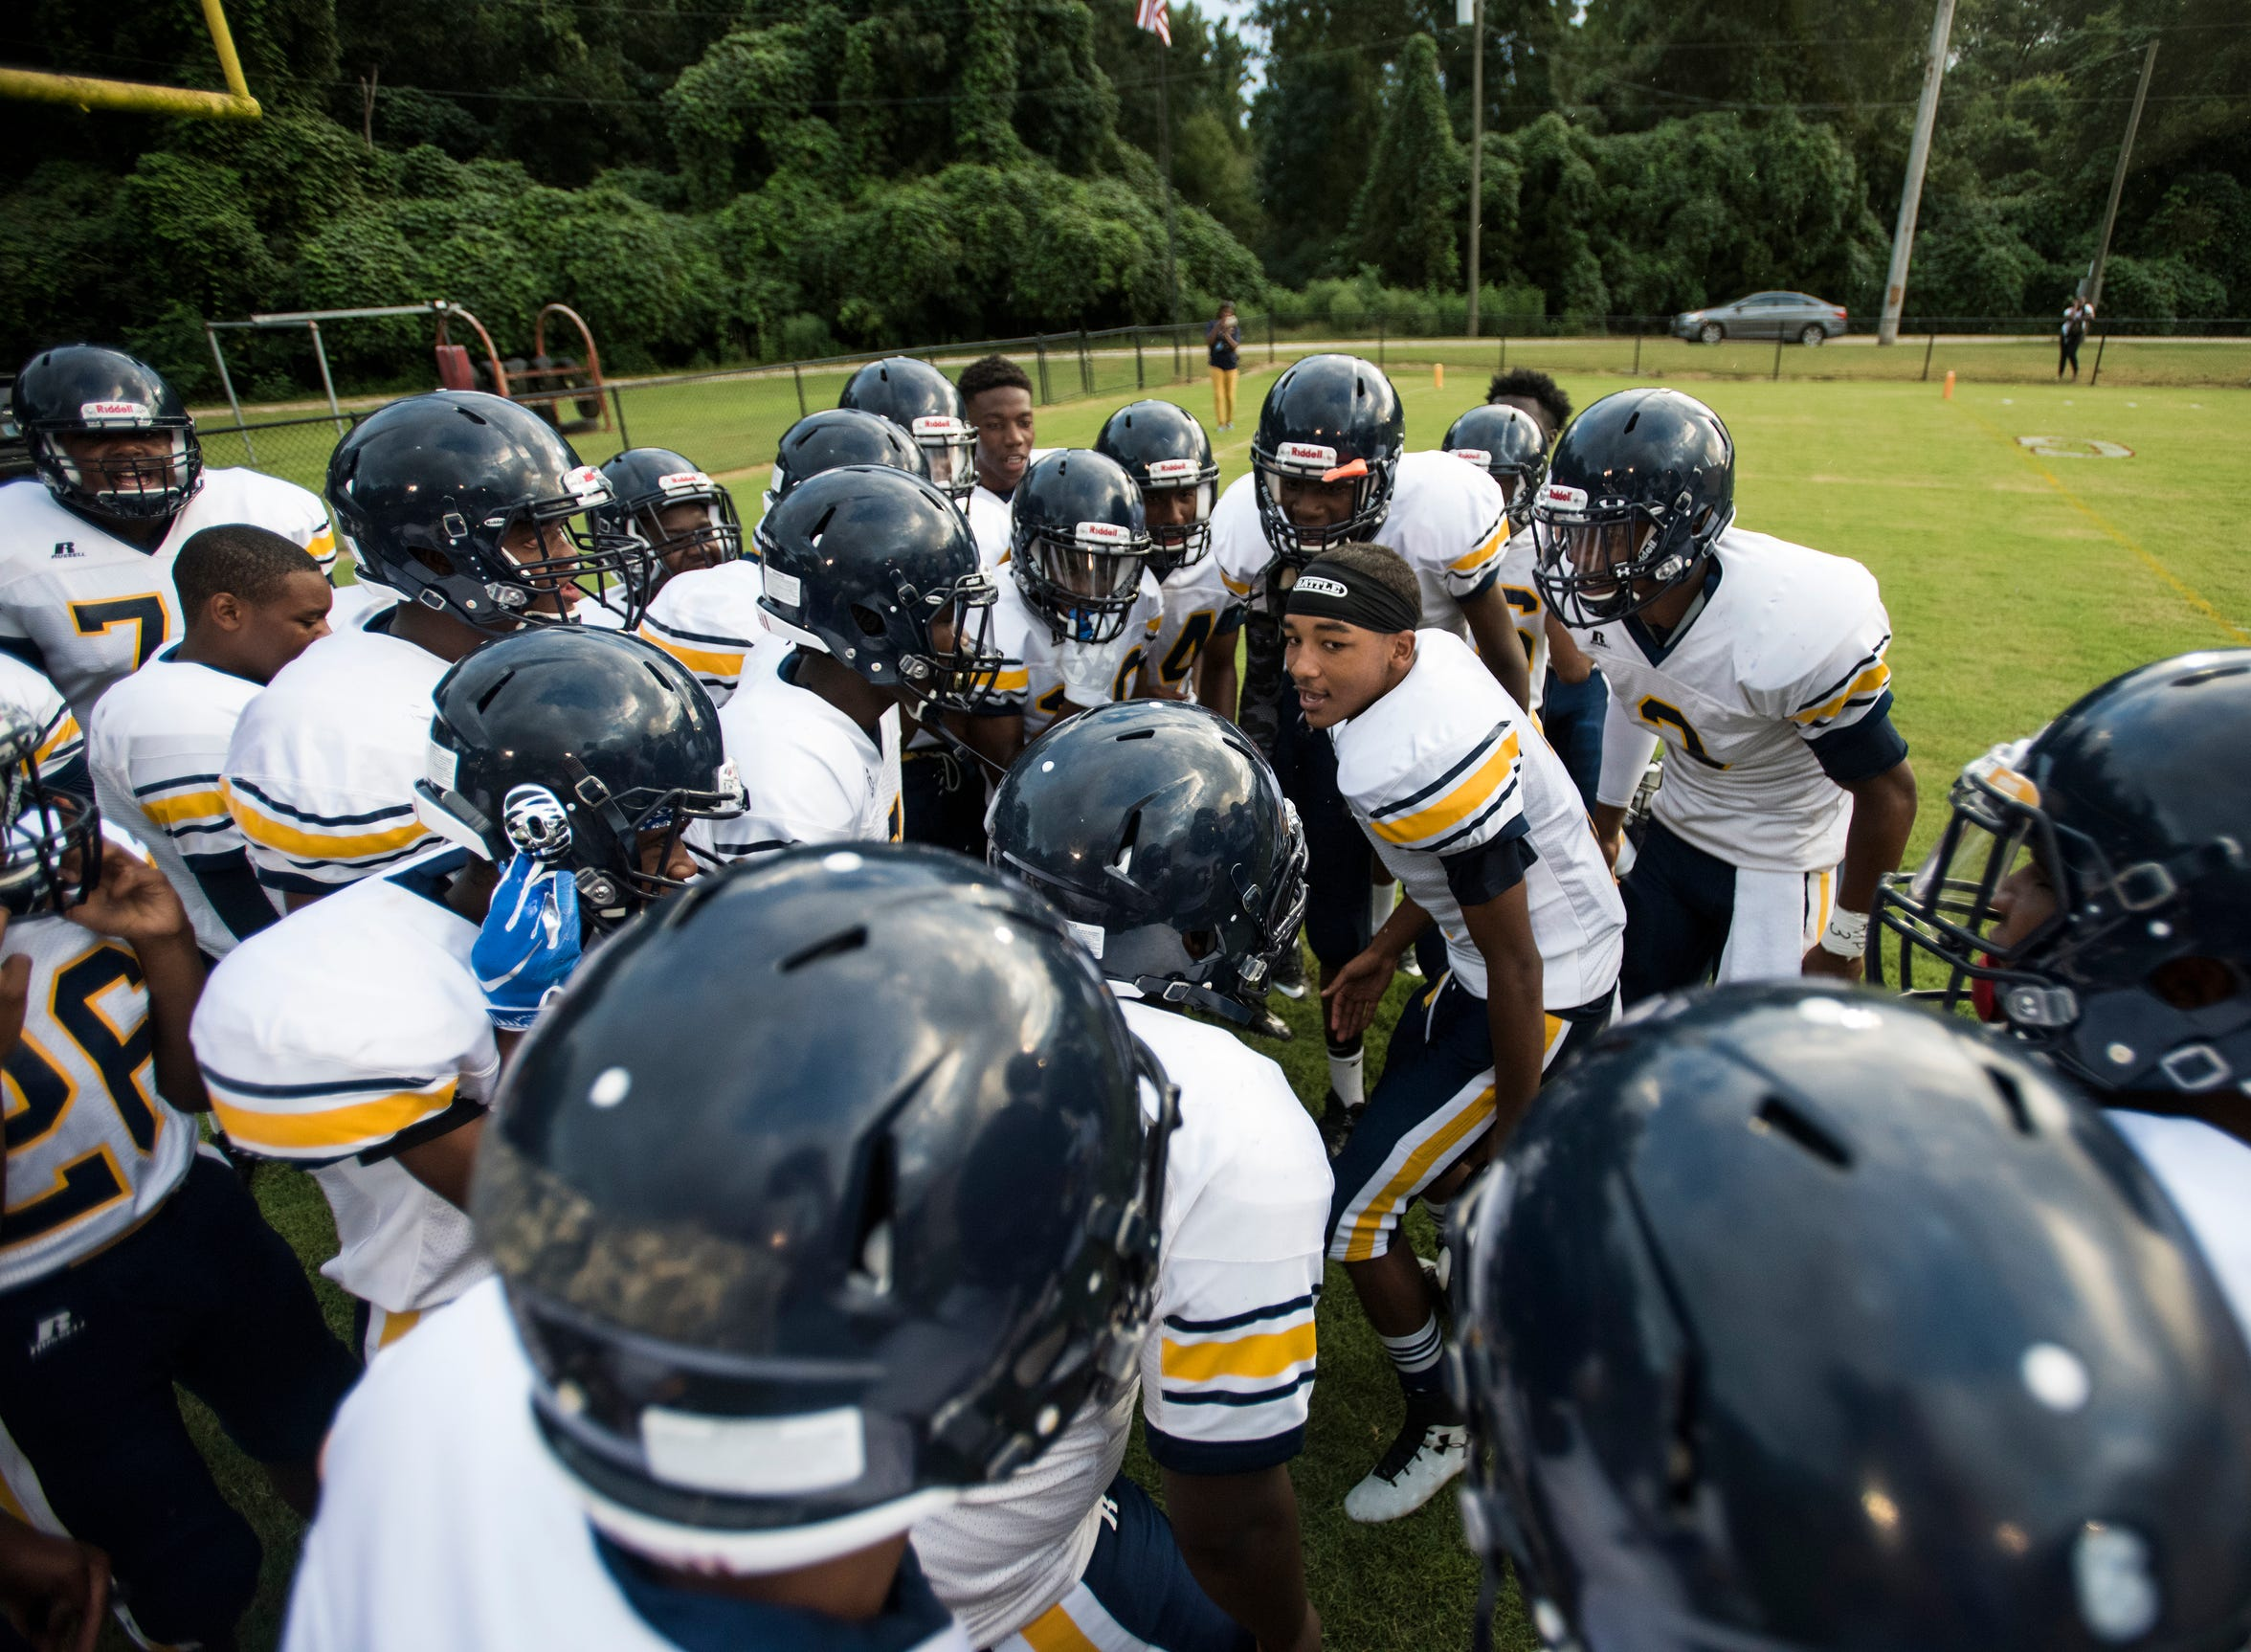 Success Unlimited's Andre Wesley (2) pumps up his team before they are introduced at Springwood High School in Lanett, Ala., on Friday, Aug. 17, 2018. Springwood defeated Success Unlimited Academy 23-12.